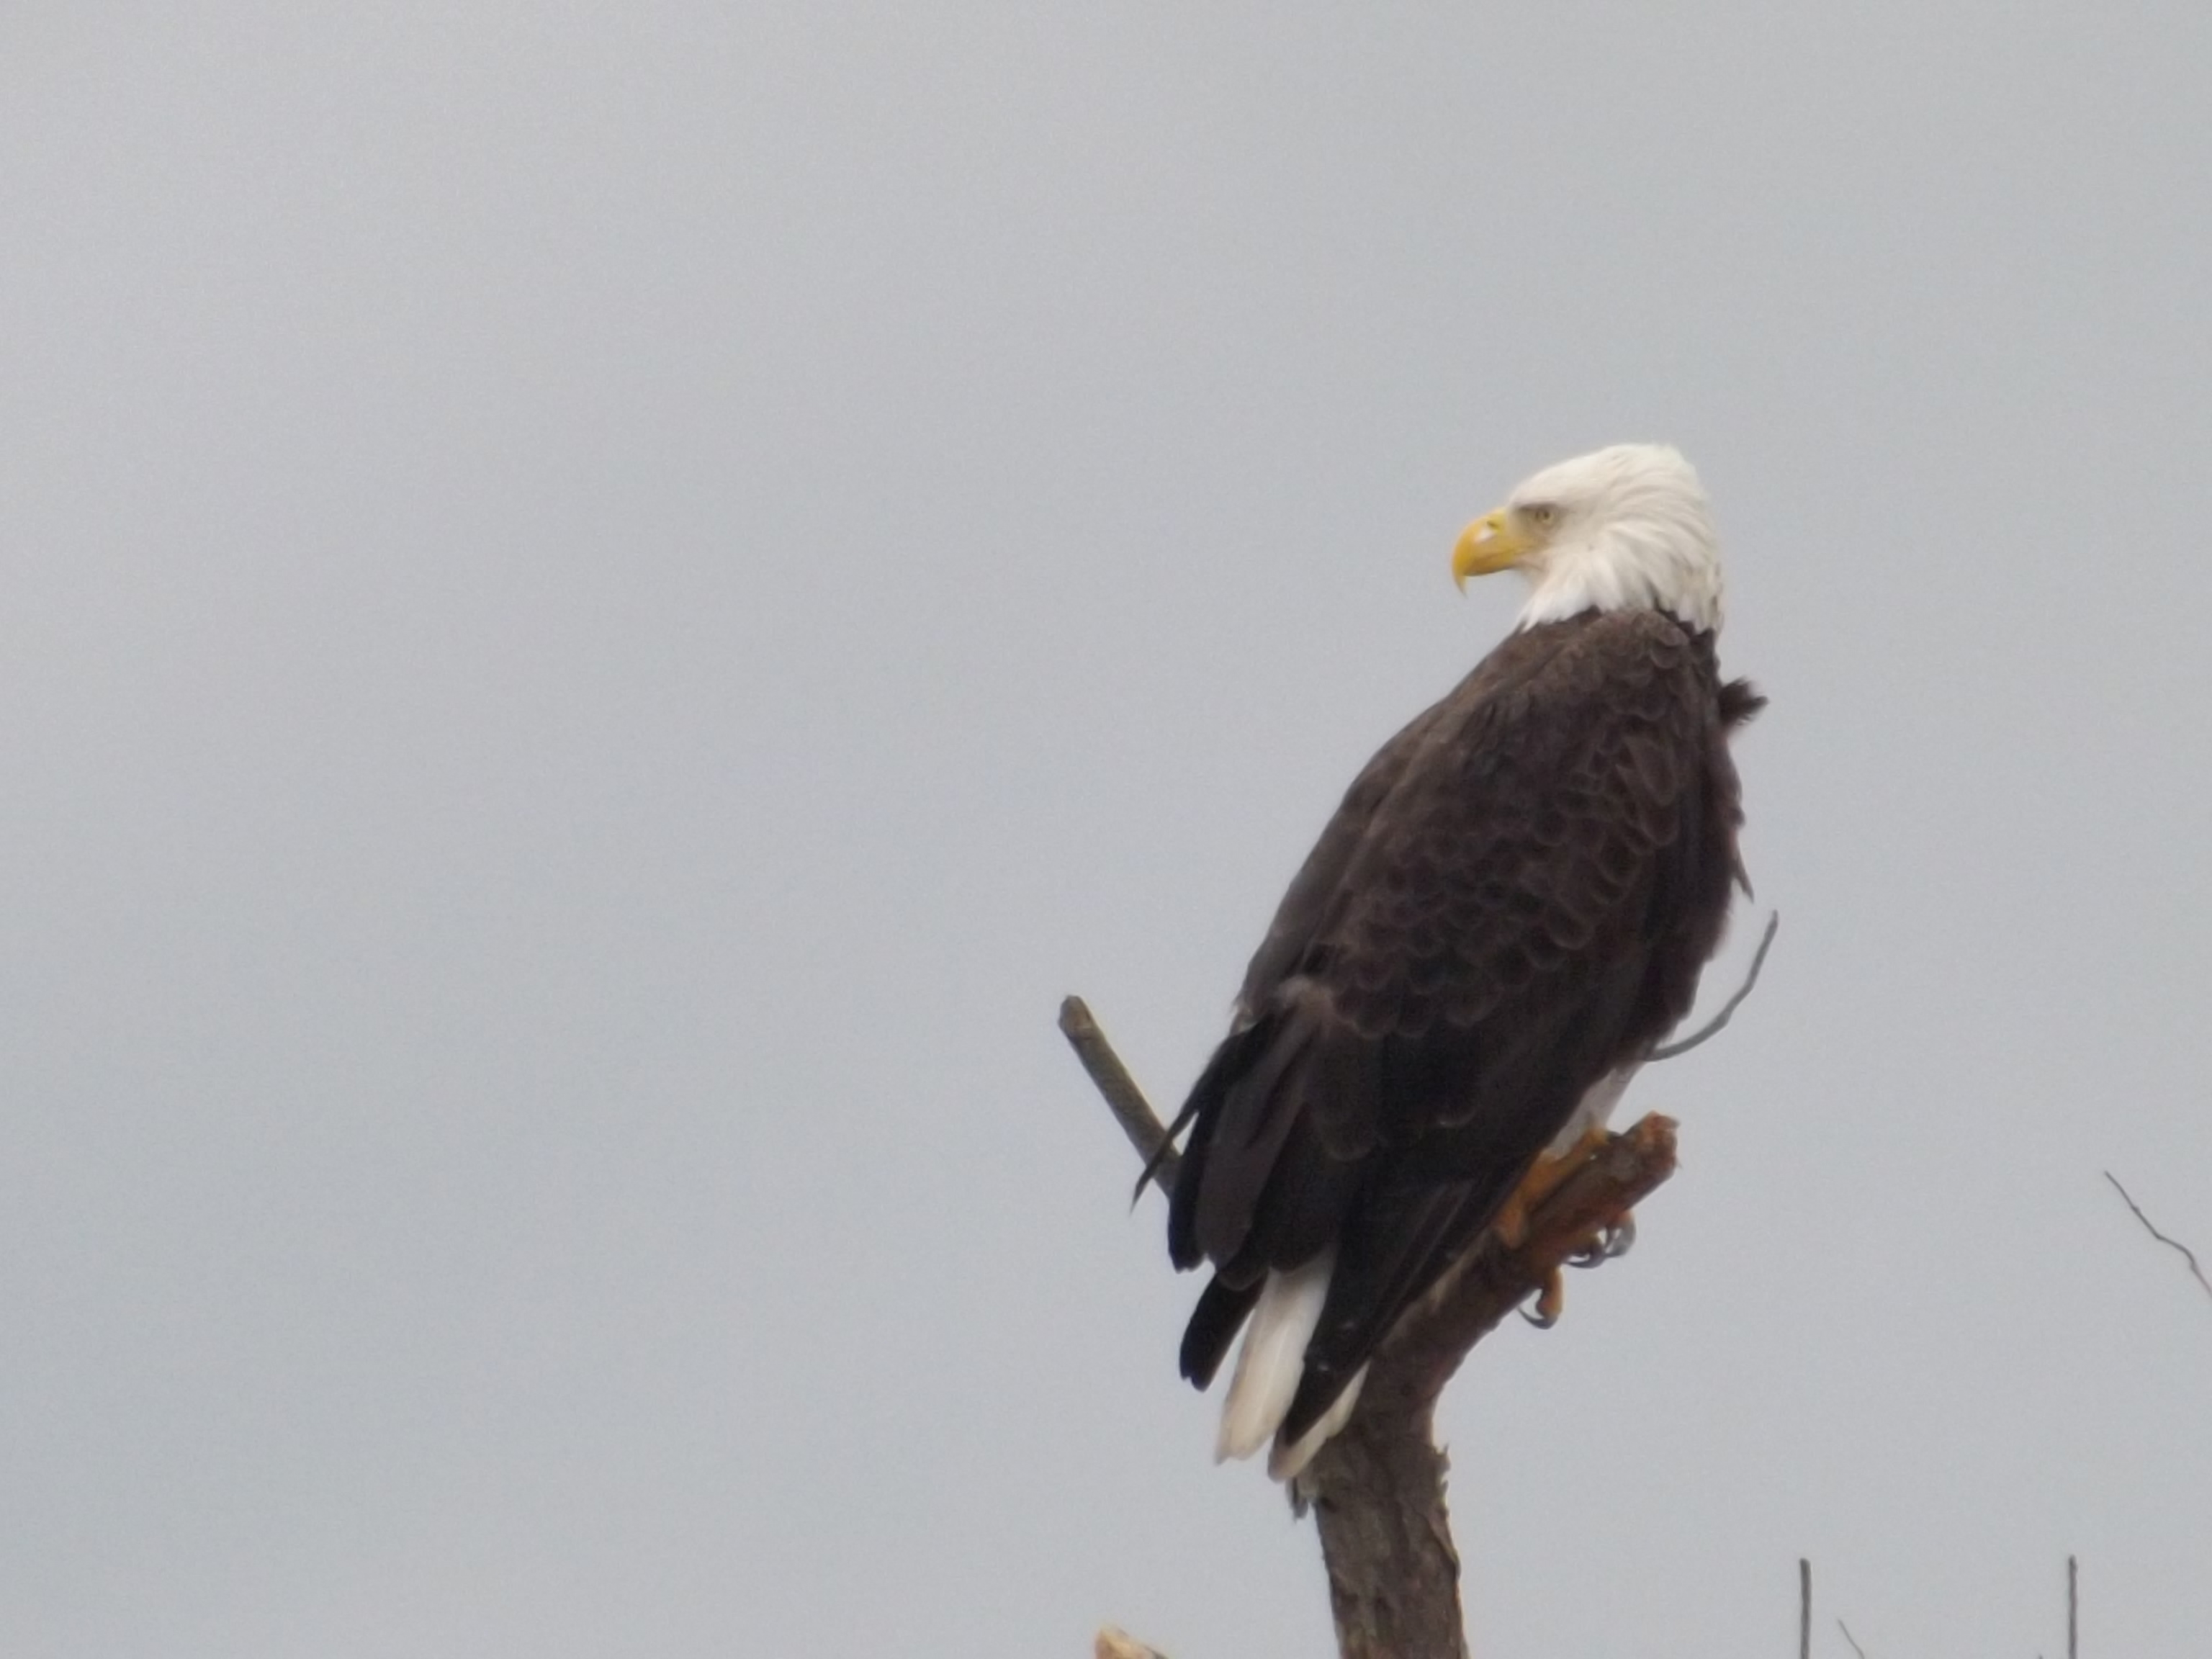 bald eagle, 1000 acre marsh, bird watching, ecotourists, C&D canal, route 9 augustine wildlife area, delaware wildlands,